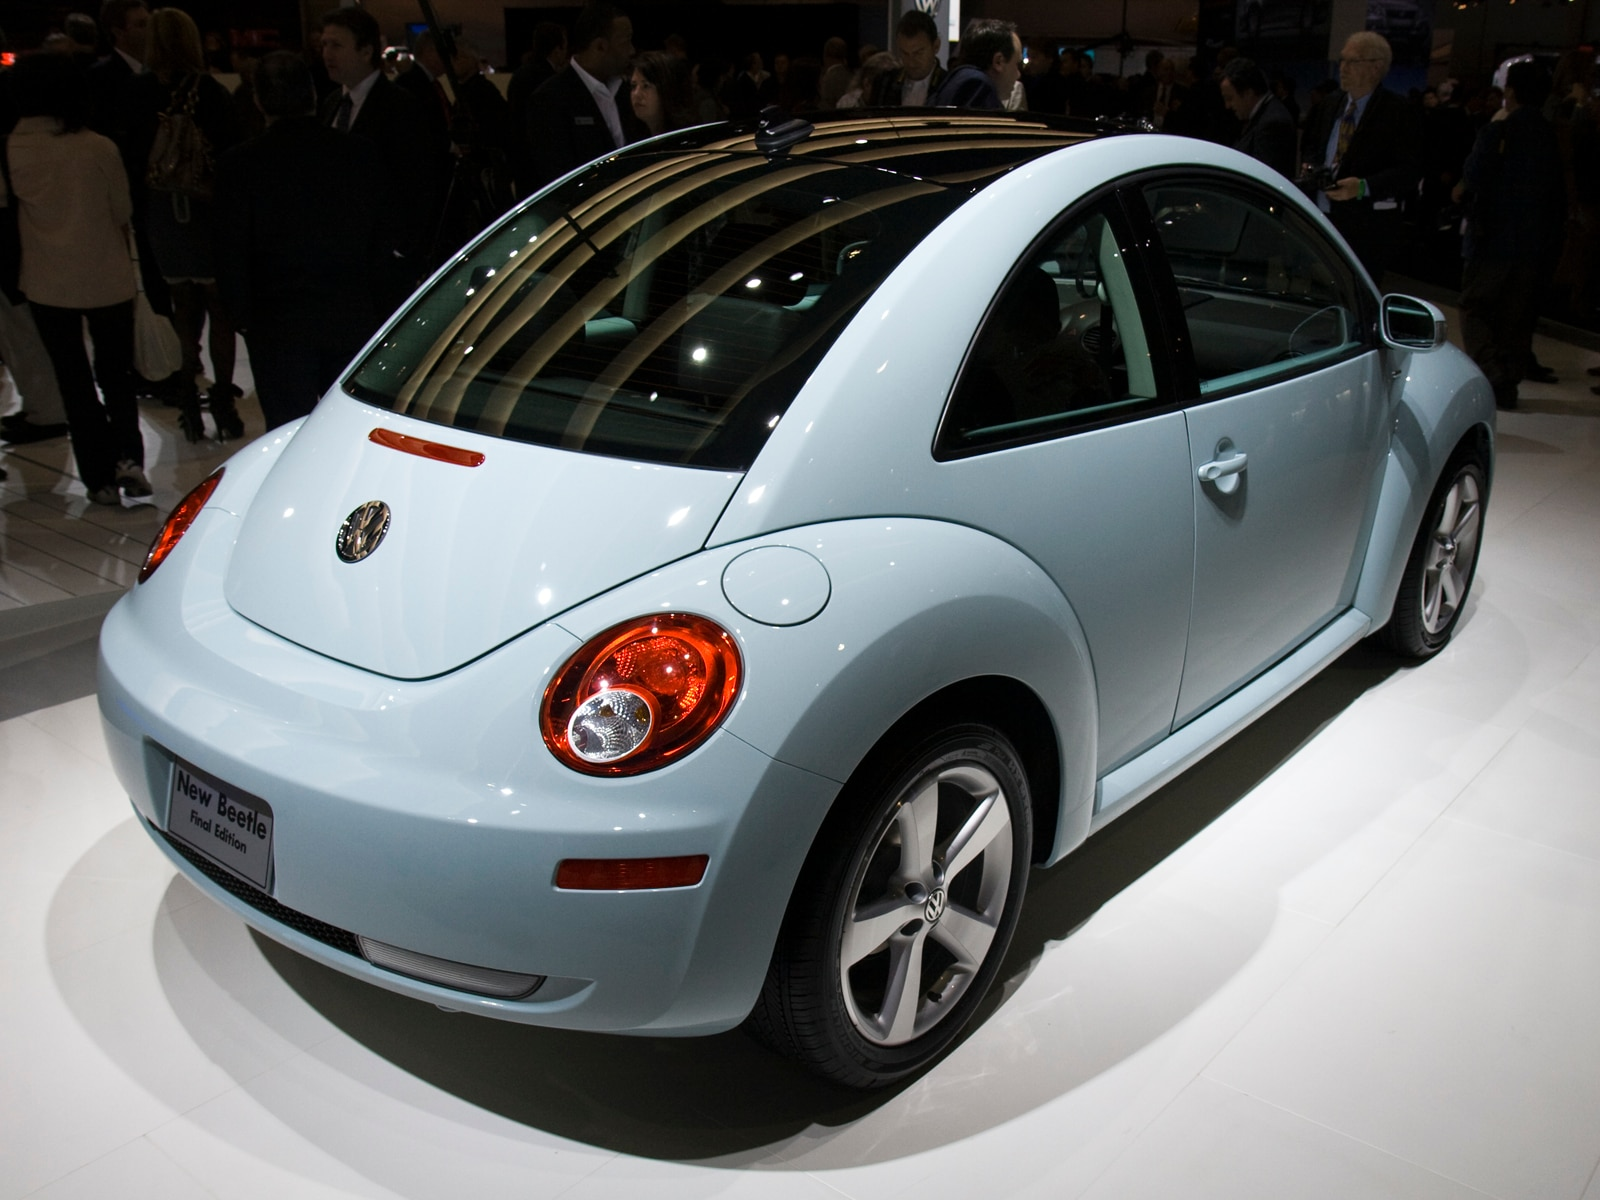 First Look: 2010 Volkswagen New Beetle Final Edition - 2009 LA Auto Show Coverage, New Car ...